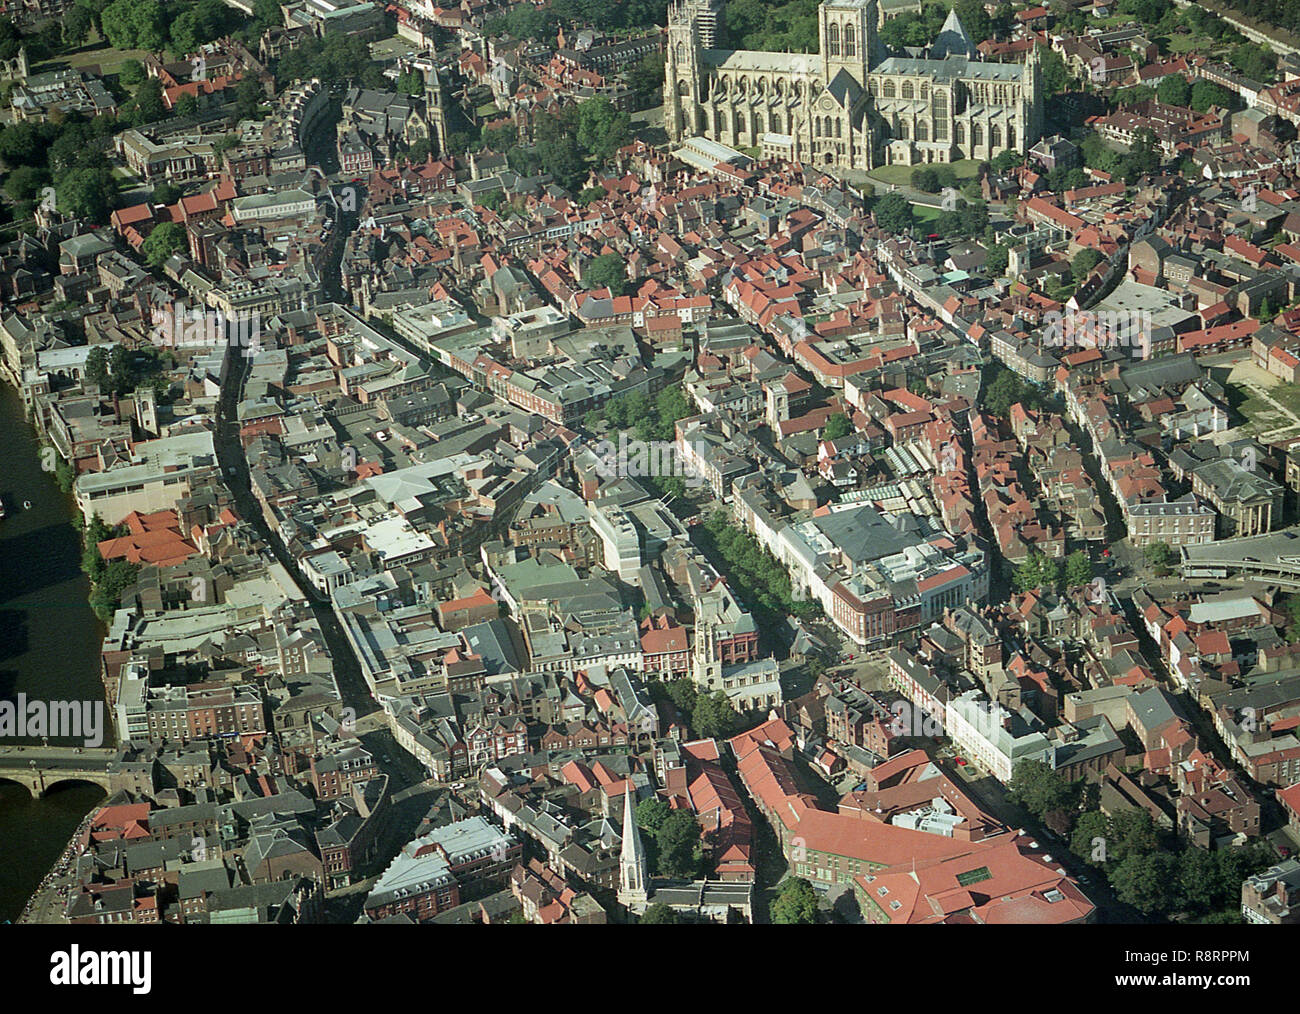 Aerial photo of City of York showing the Minster and the town centre - Stock Image